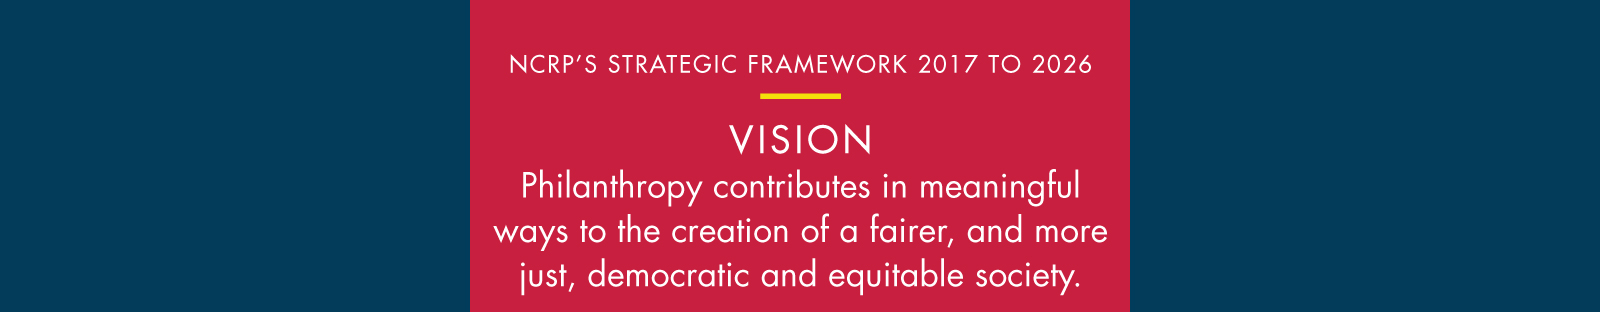 This logic model shows NCRP's strategic framework for 2017-2026, which is guided by the vision that philanthropy contributes in meaningful ways to the creation of a fairer, and more just, democratic and equitable society.